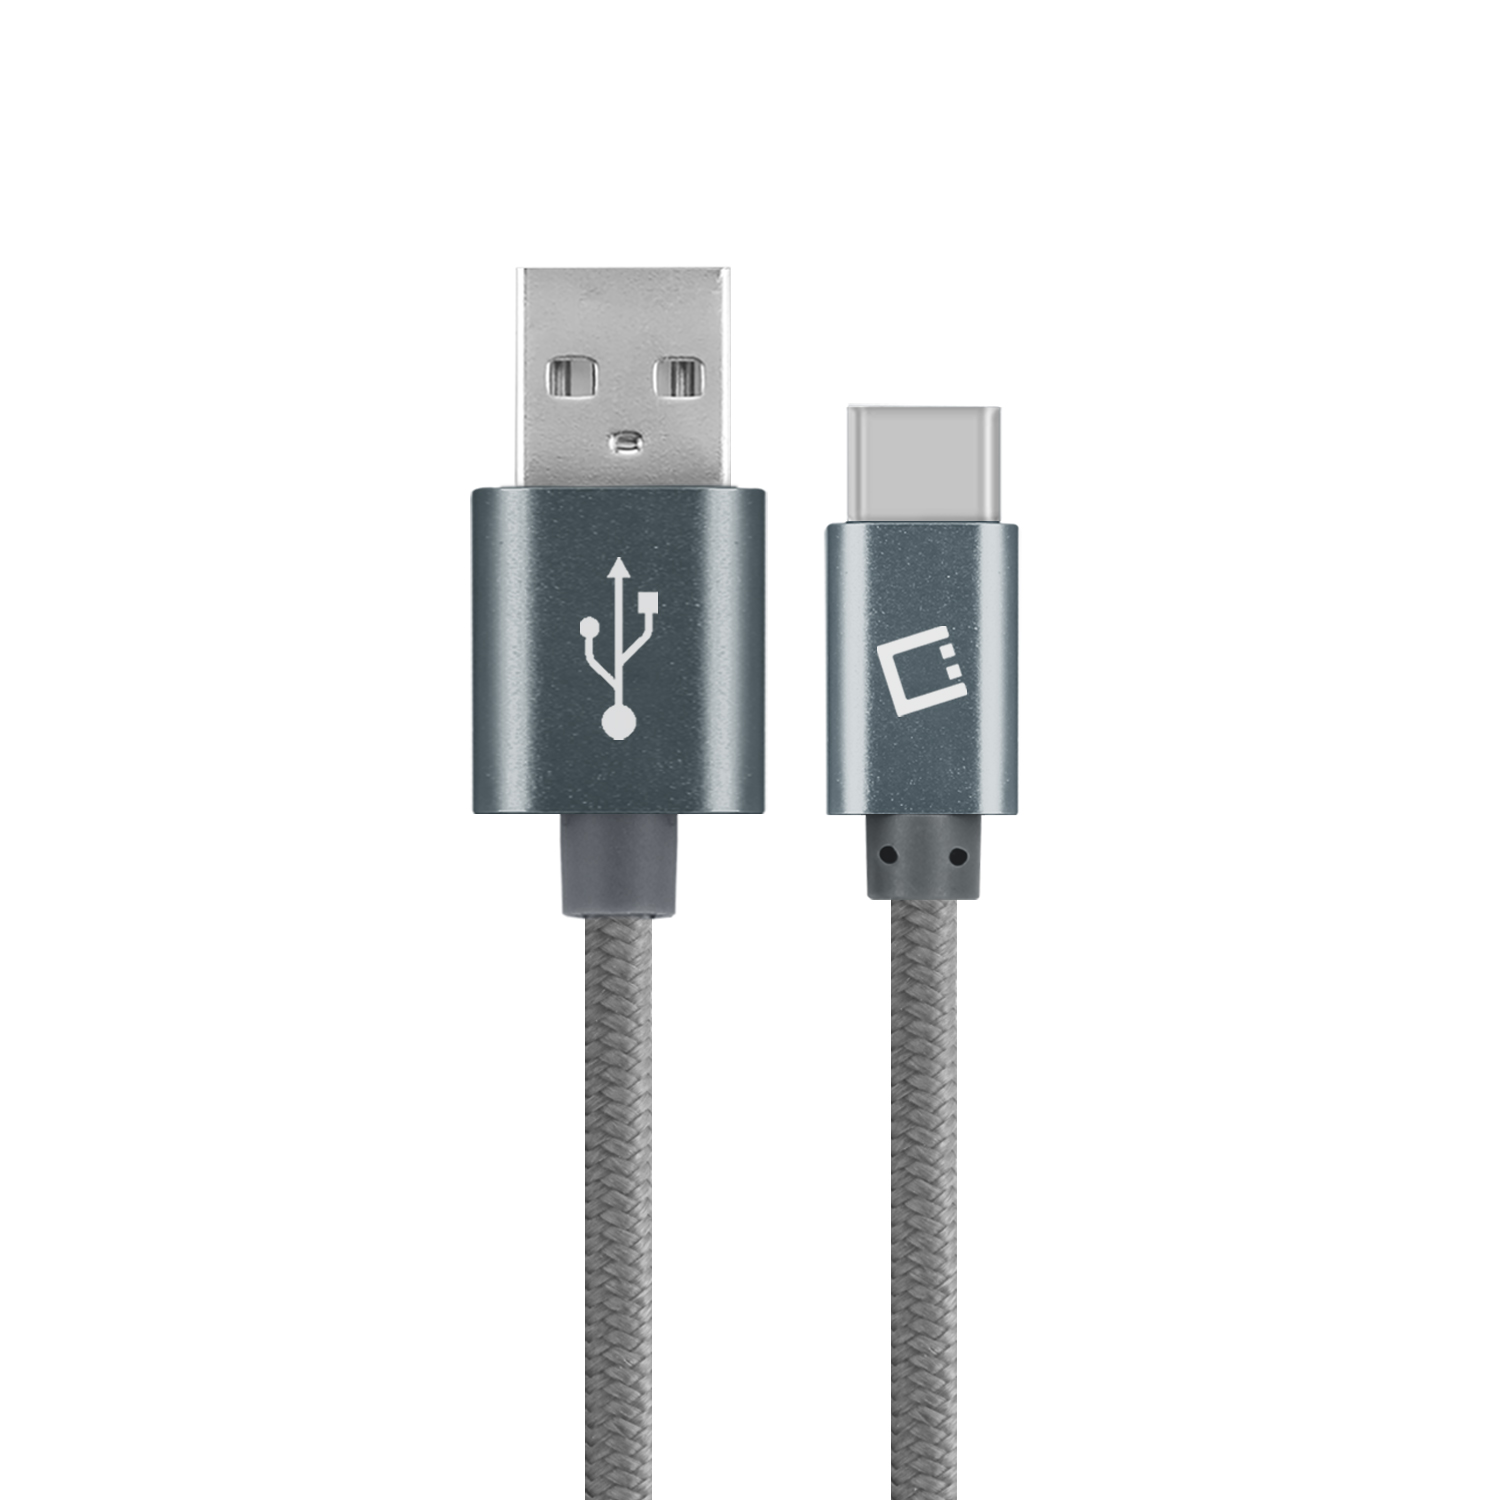 Samsung Galaxy A10e USB Type-C To Type-A Braided Data Power Cable Grey 6ft Braided